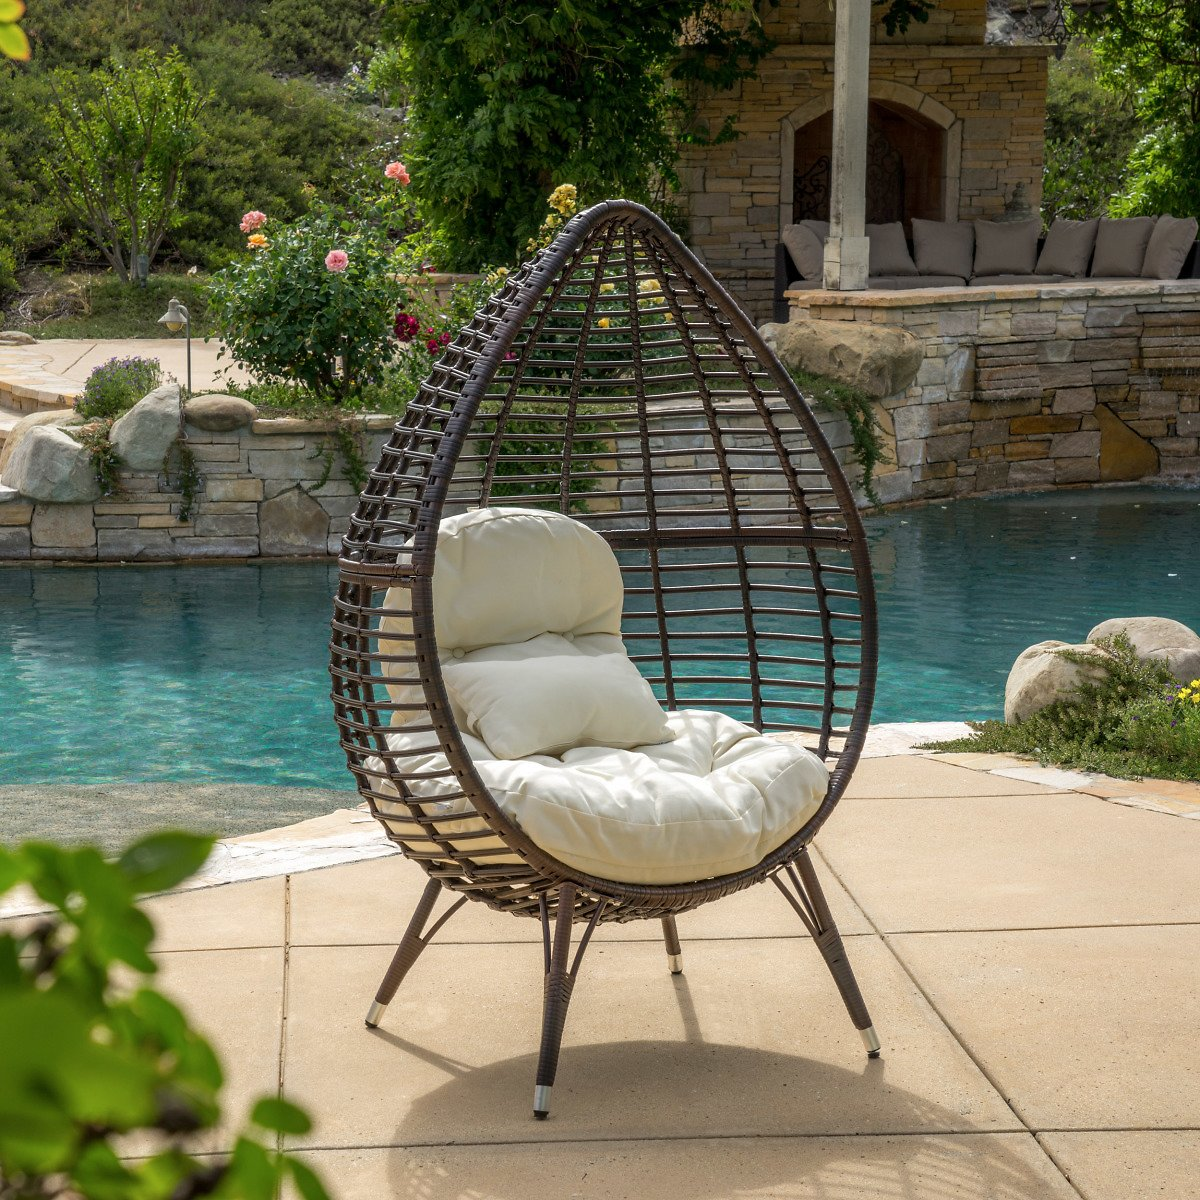 Melton Teardrop Wicker Lounge Chair with Cushion, Multibrown and Beige